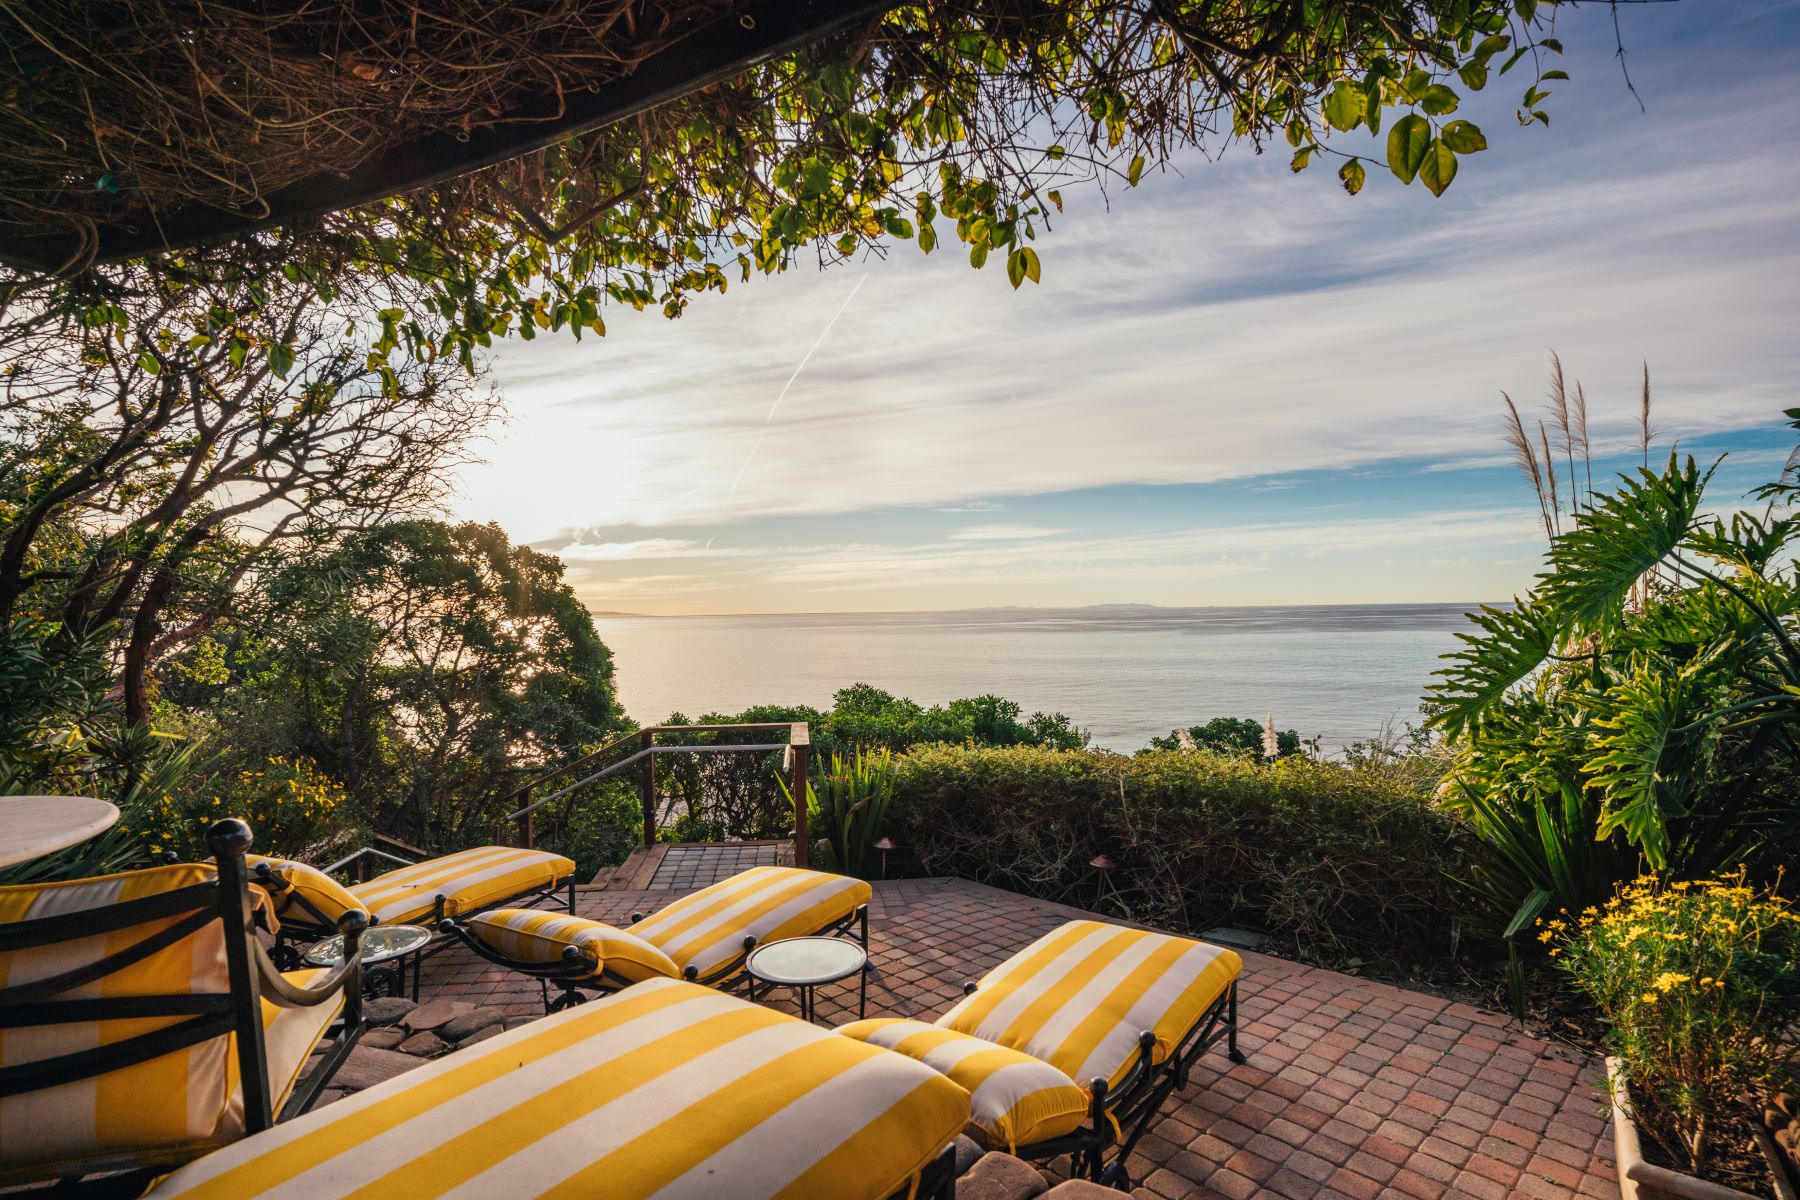 Additional photo for property listing at Mar de Amor 27930 Pacific Coast Highway Malibu, California 90265 United States